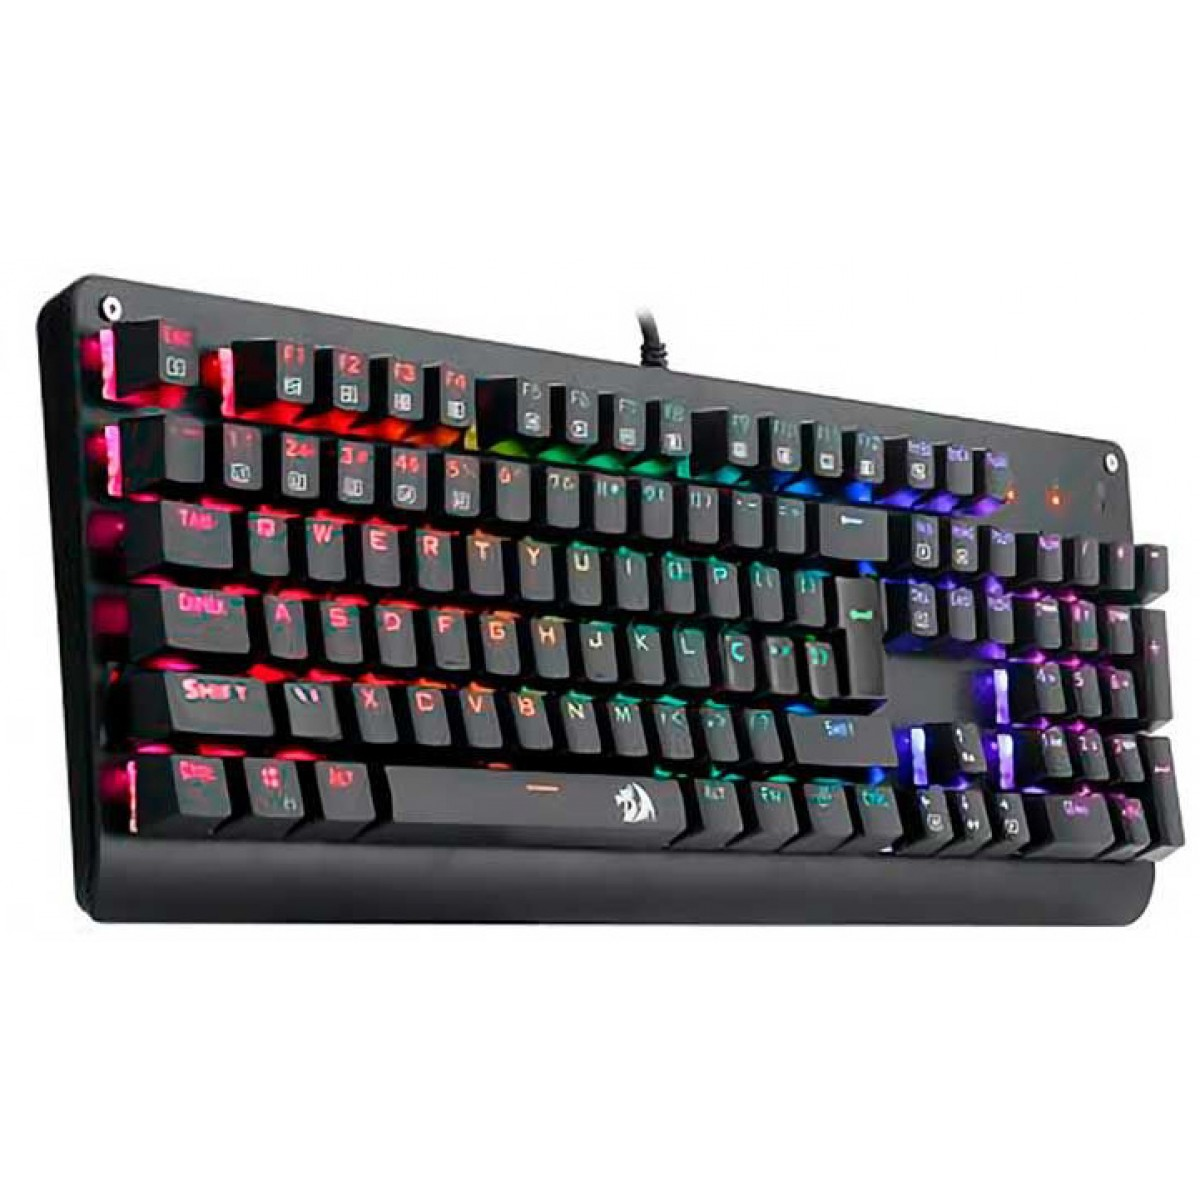 Teclado Mecânico Gamer Redragon Sani, Switch Blue, Led RGB, ABNT2, Black, K581RGB